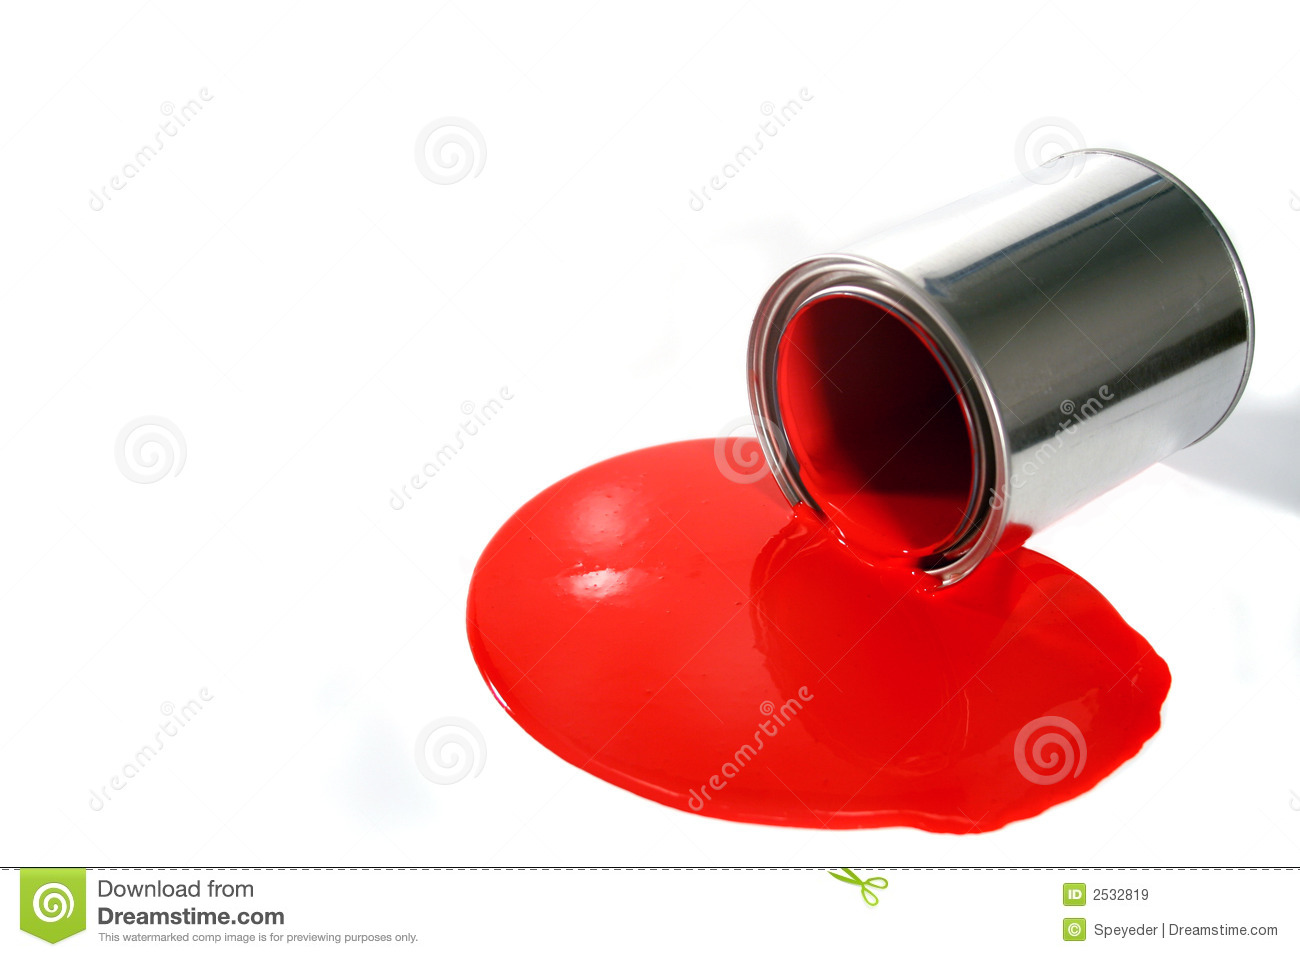 Spilled Paint Pail Royalty Free Stock Images   Image  2532819